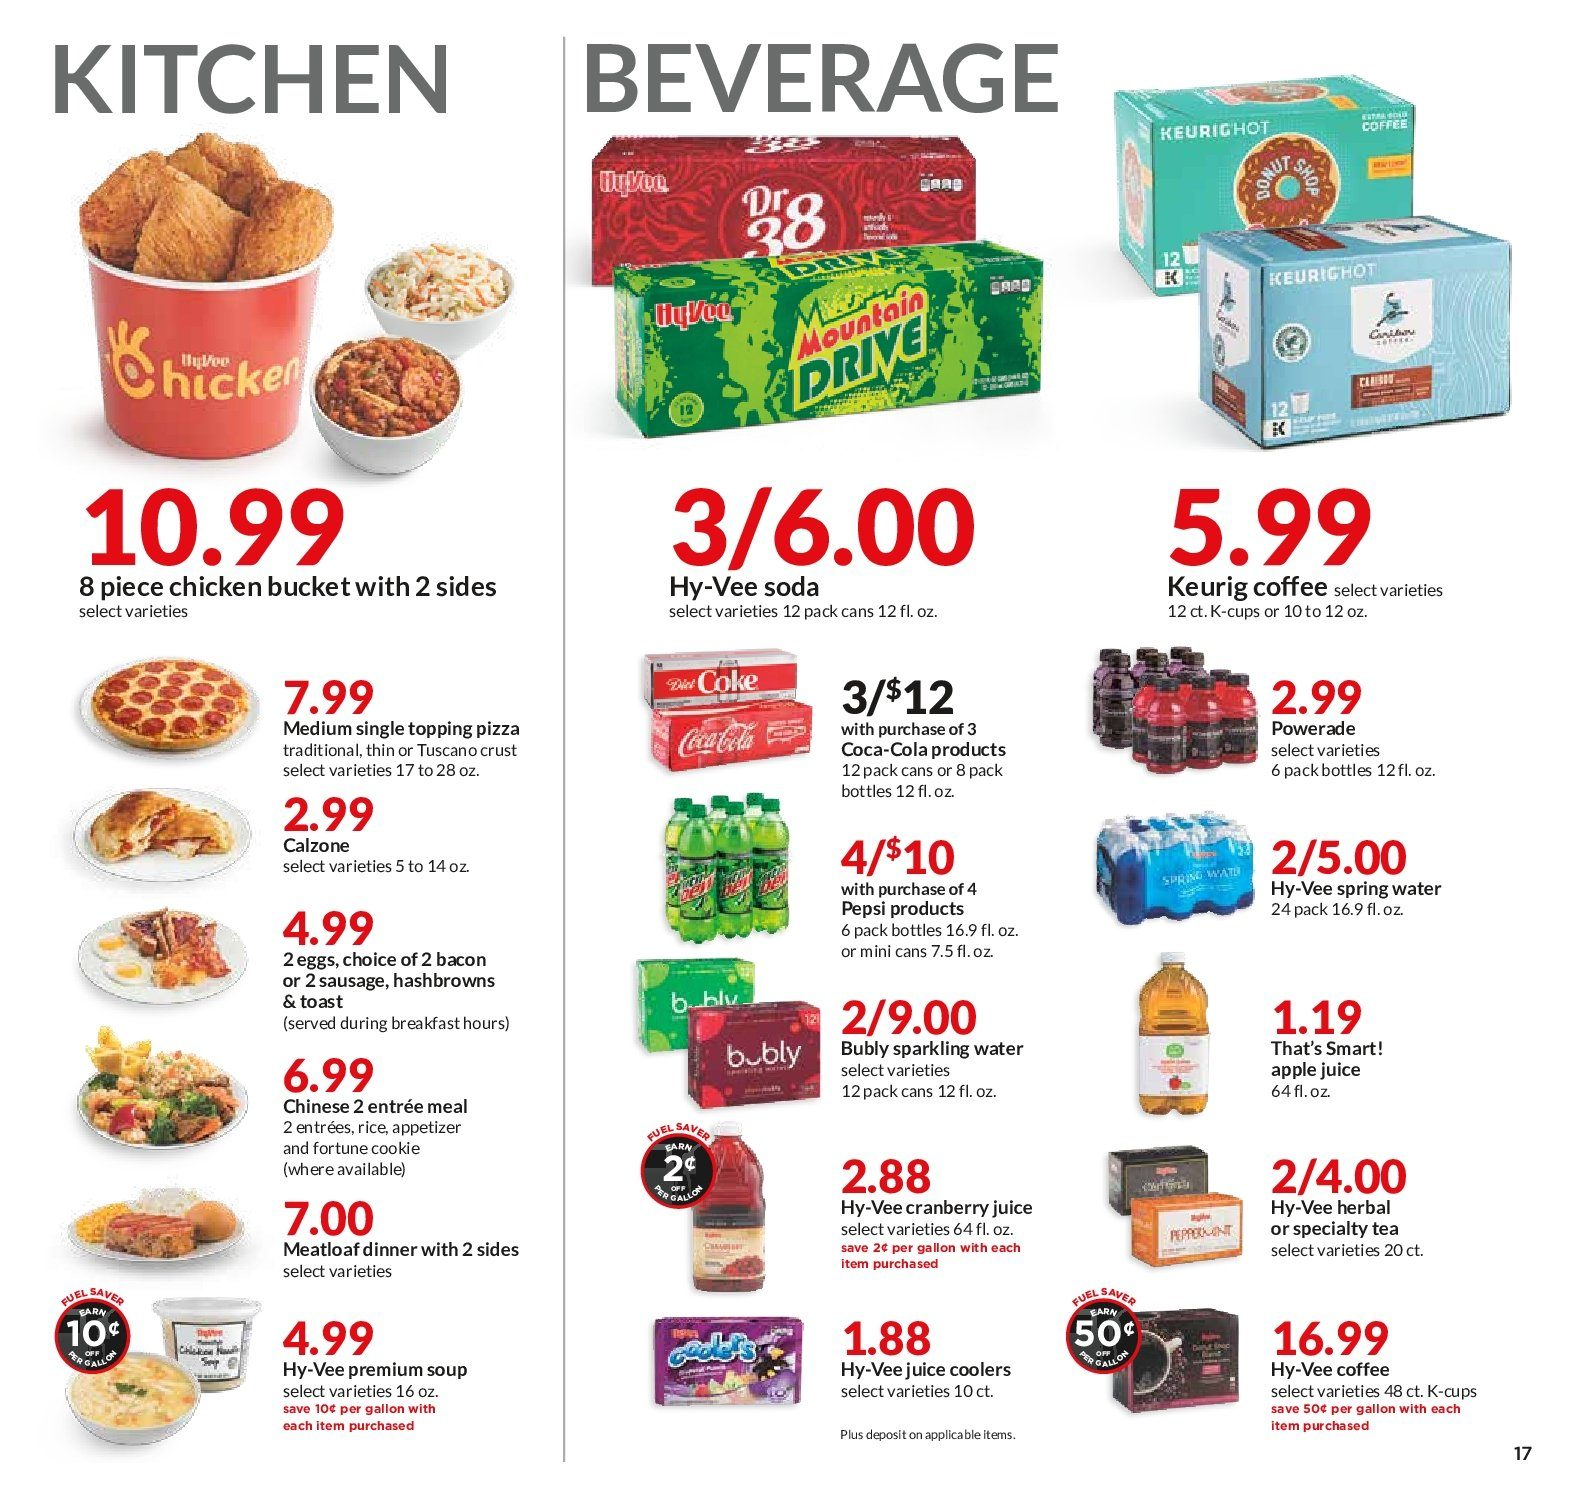 HyVee Flyer - 02.06.2019 - 02.12.2019 - Sales products - apple juice, apple, bacon, coca-cola, coffee, cranberry juice, eggs, rice, sausage, spring water, tea, hash browns, kitchen, pizza, powerade, pepsi, soda, water, juice, soup, sparkling water, appetizer, topping, bucket. Page 17.